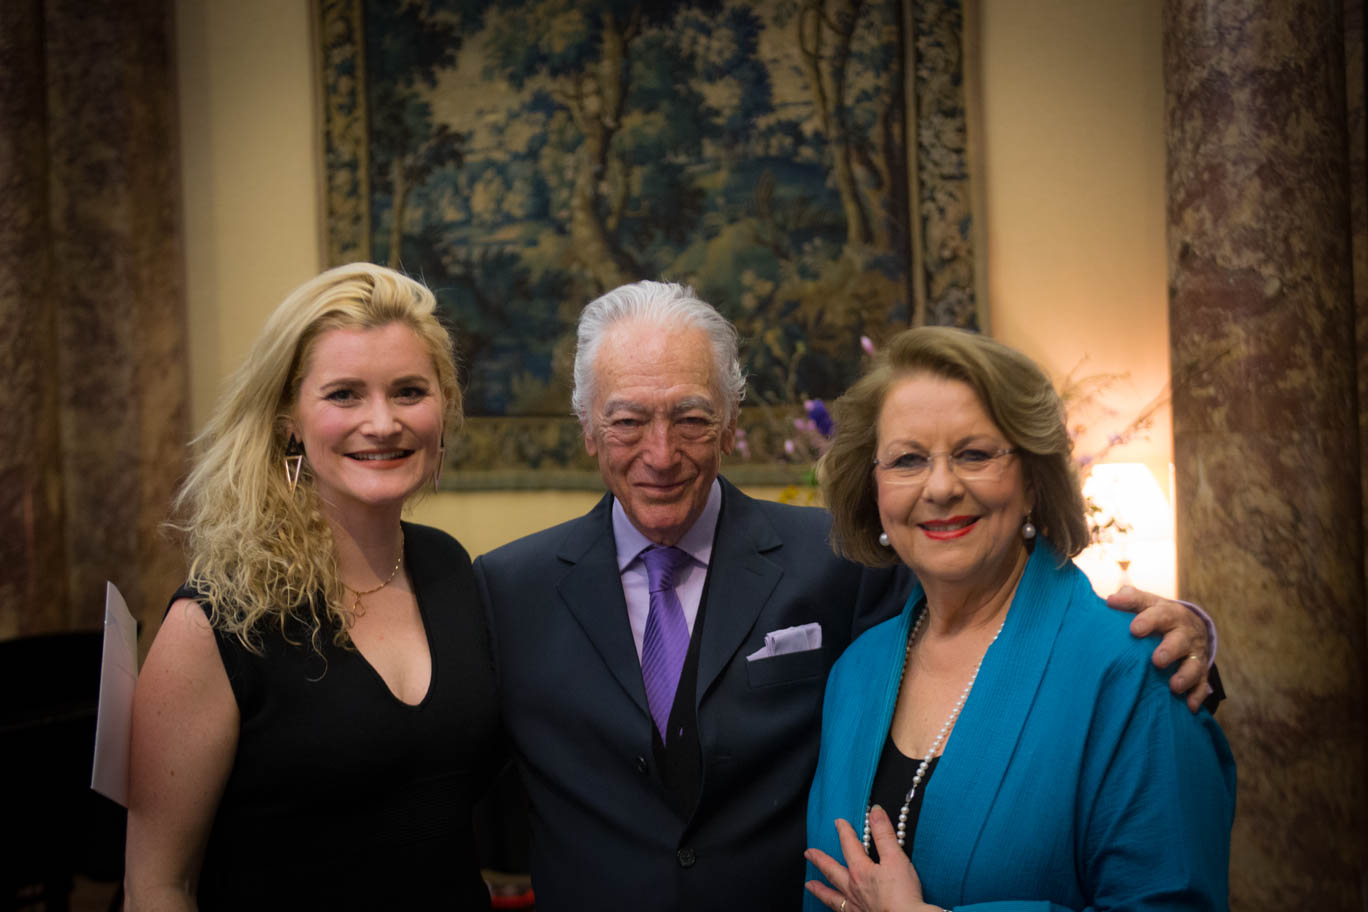 Samantha with two of her Australian operatic heroes, conductor Richard Bonynge and my teacher, soprano Yvonne Kenny AM at Australia House.